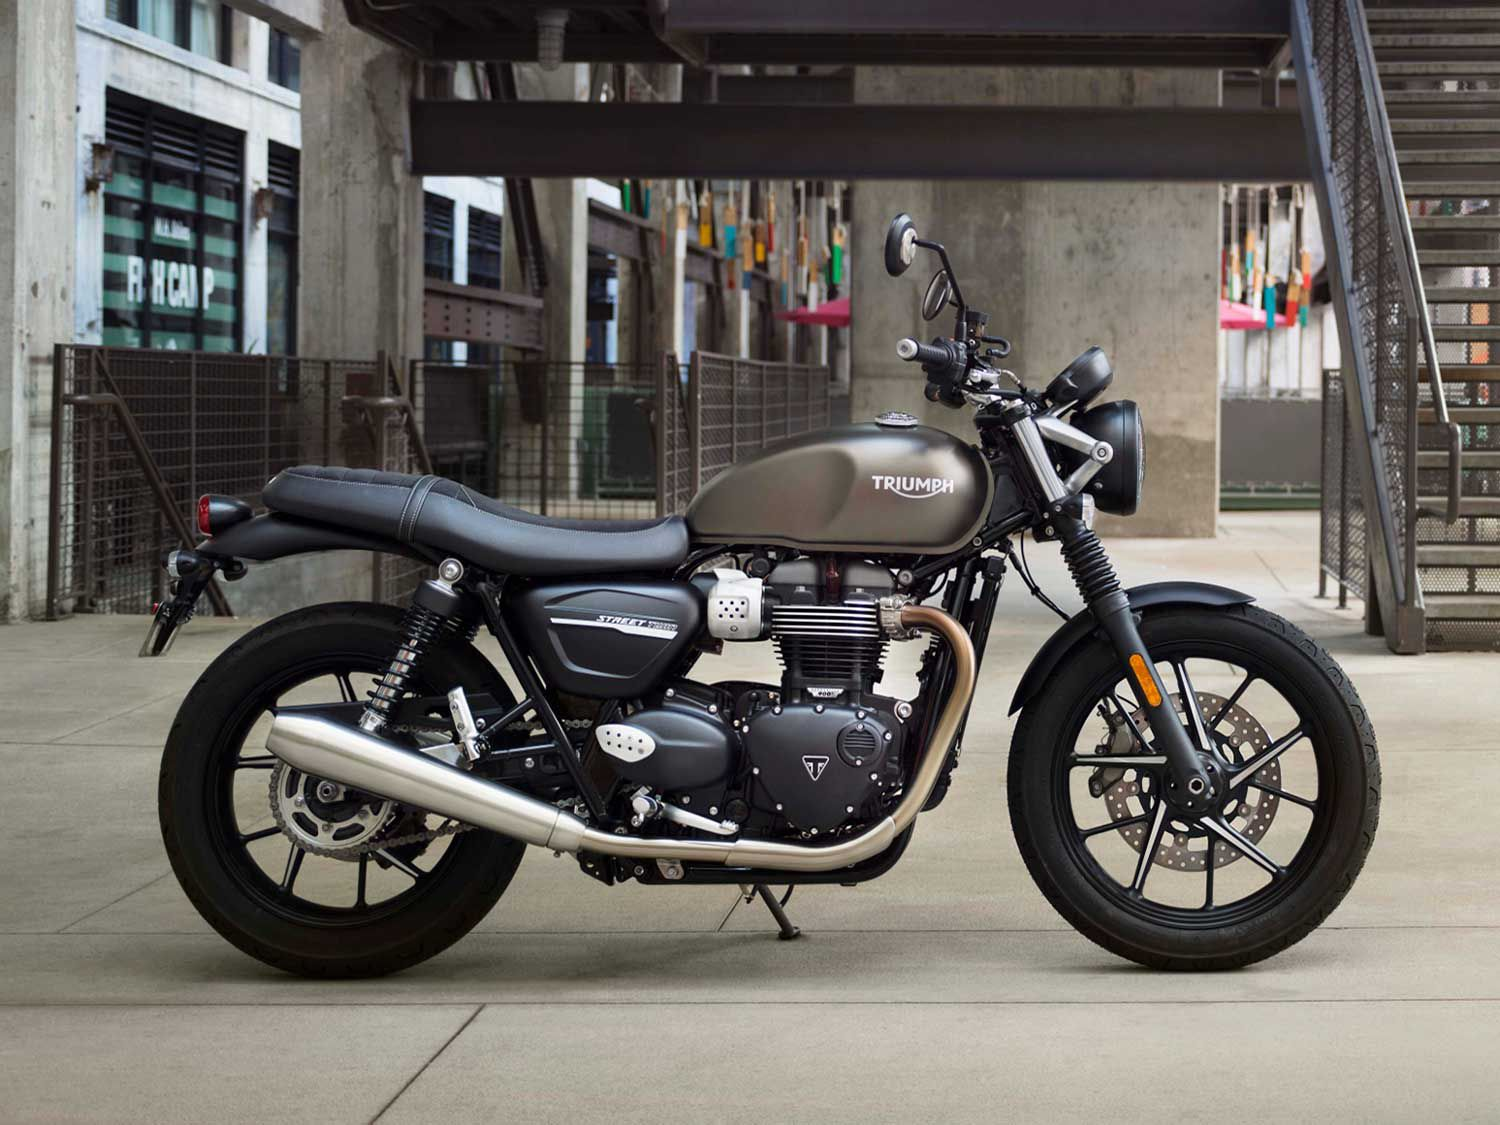 Speaking of entire platform overhauls, Triumph did just that with its Bonneville-based classics, making the massively satisfying new T120, Thruxton and Street Twin models in the process. Pictured is the 2019 Street Twin.